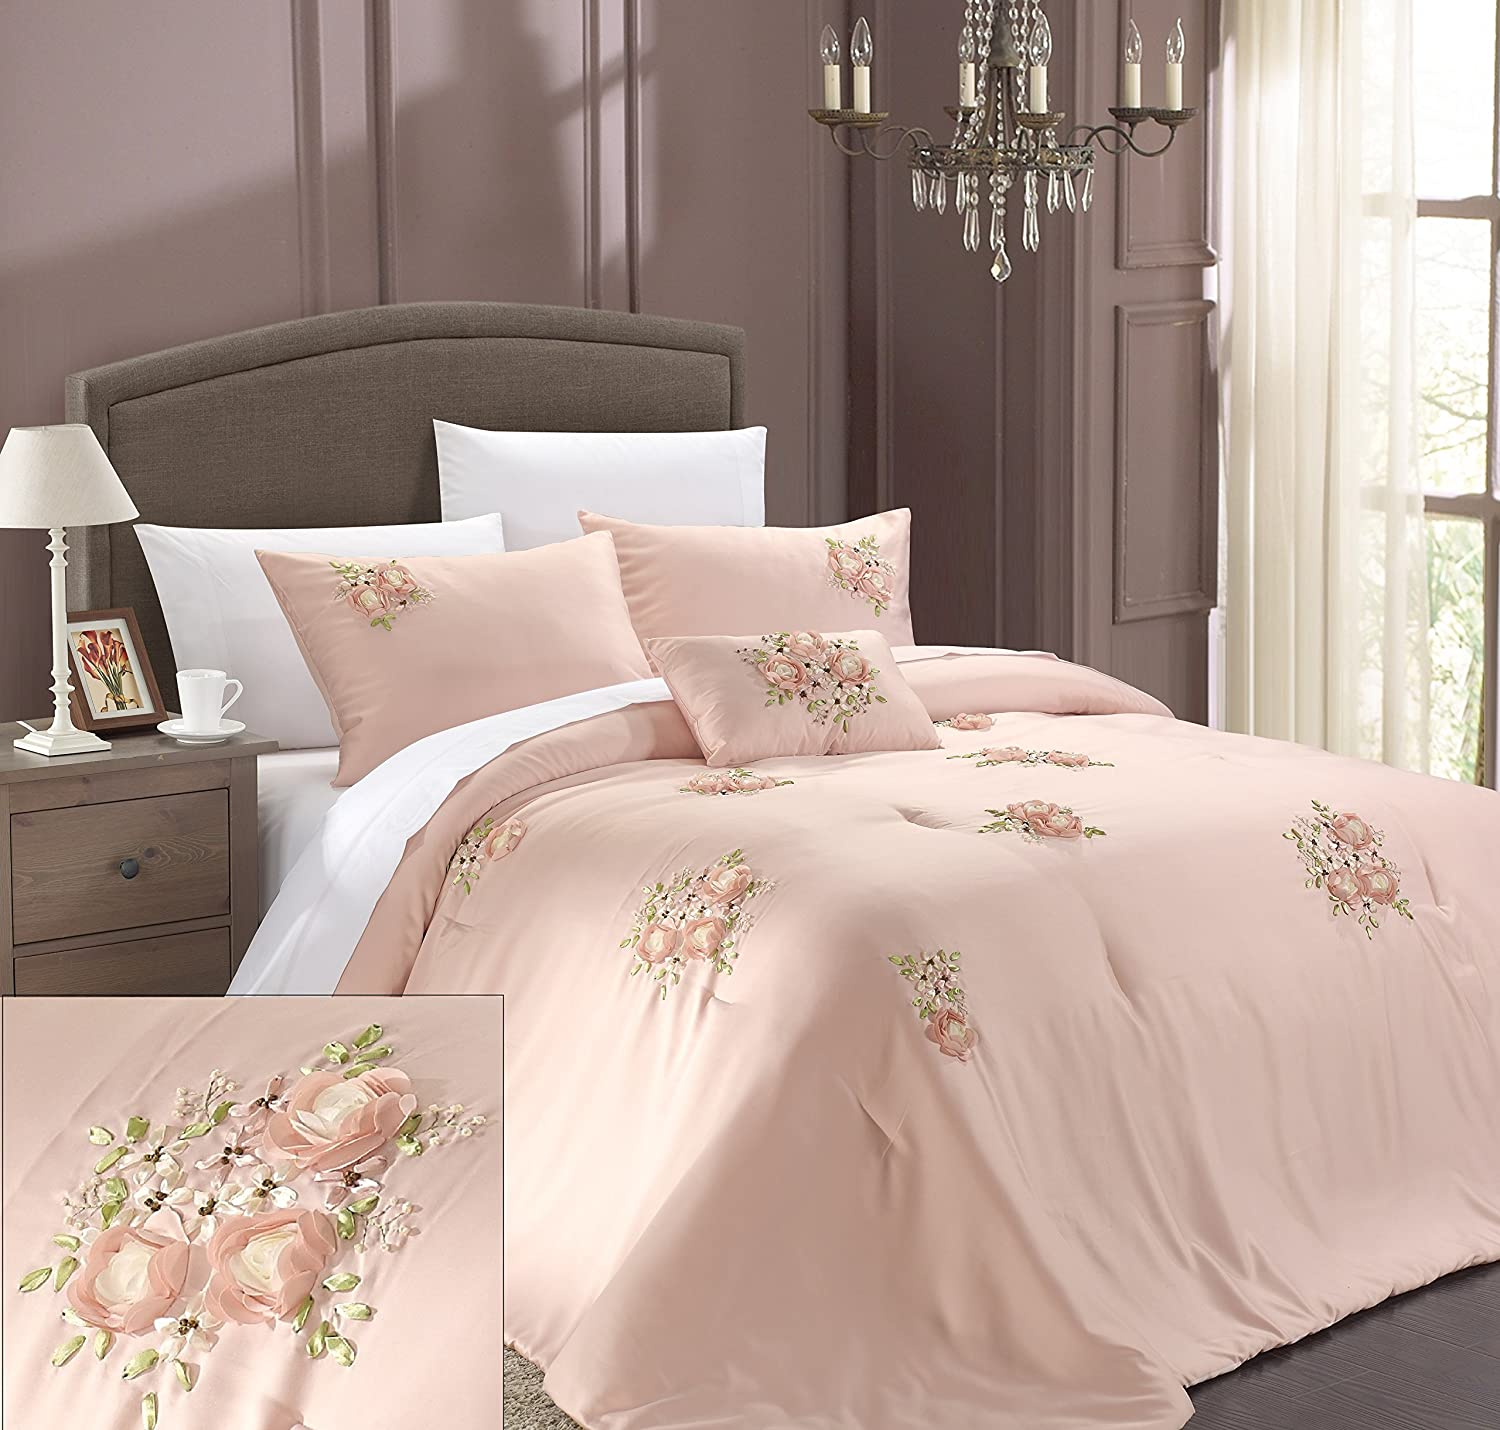 pink queen comforter set Amazon.com: Chic Home Rosetta 5 Piece Comforter Set, Queen, Pink  pink queen comforter set